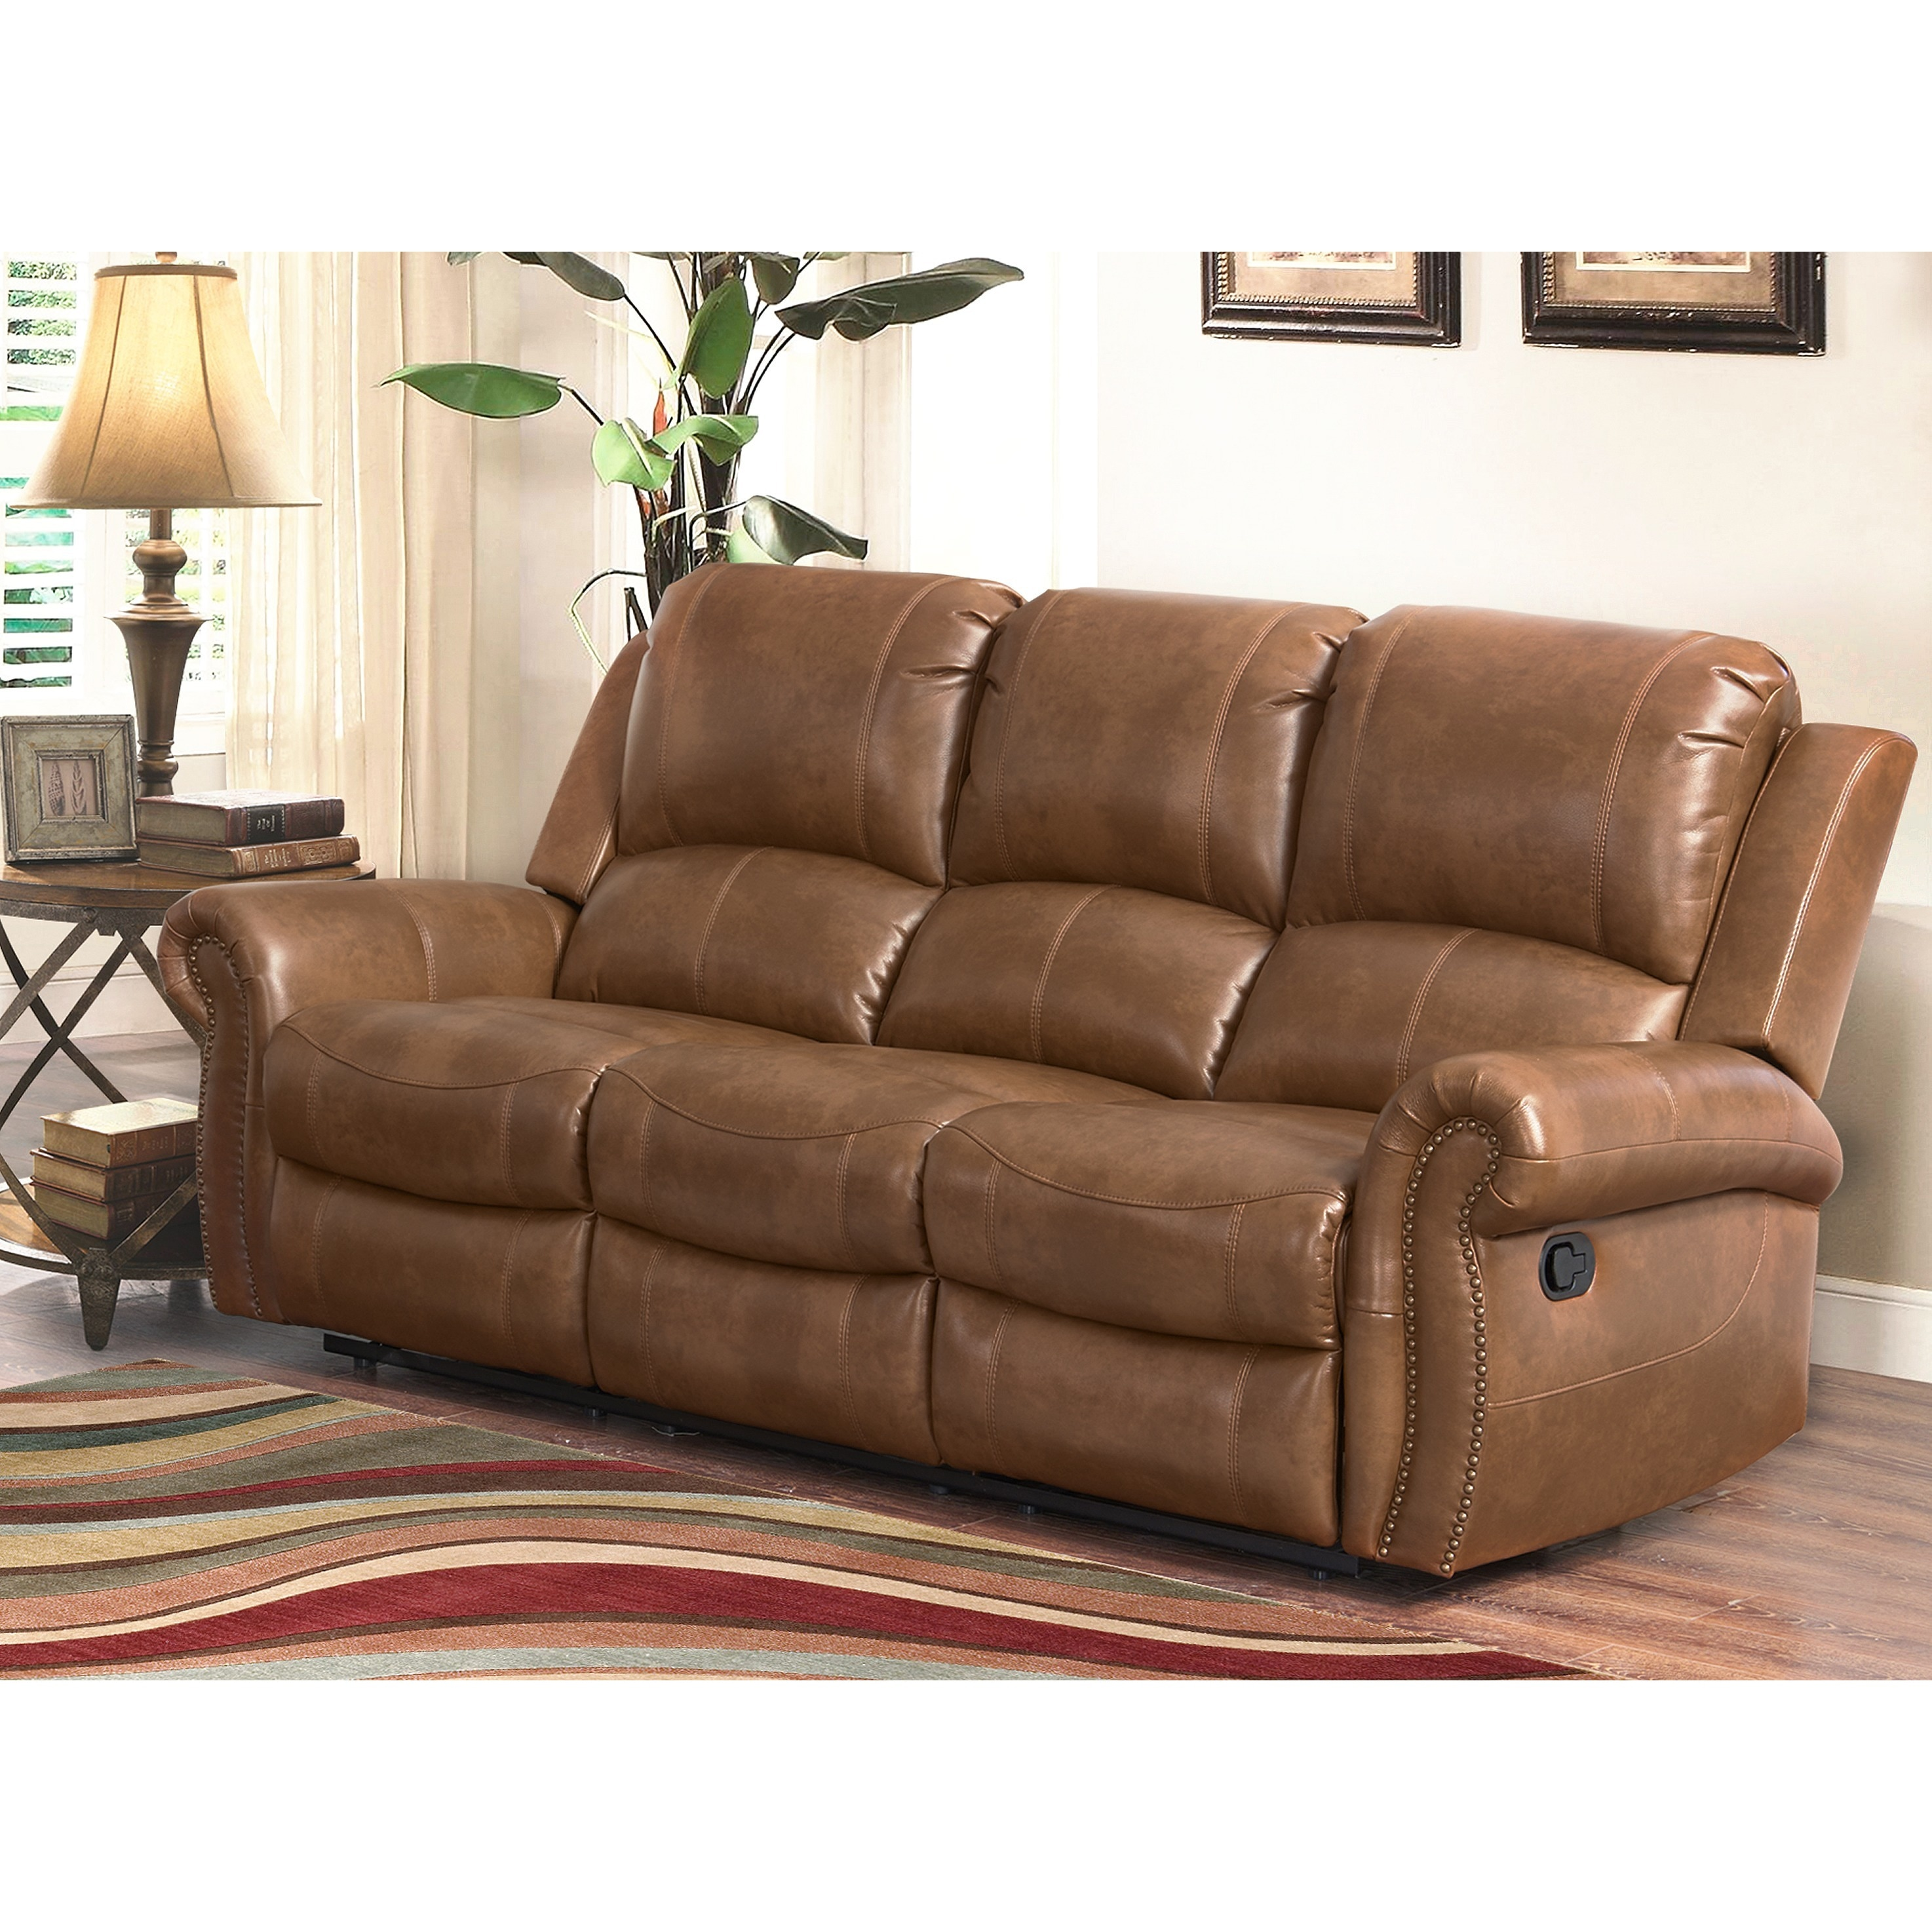 Cognac Sofa Cognac Leather Sofas Are Now On Trend For 2018